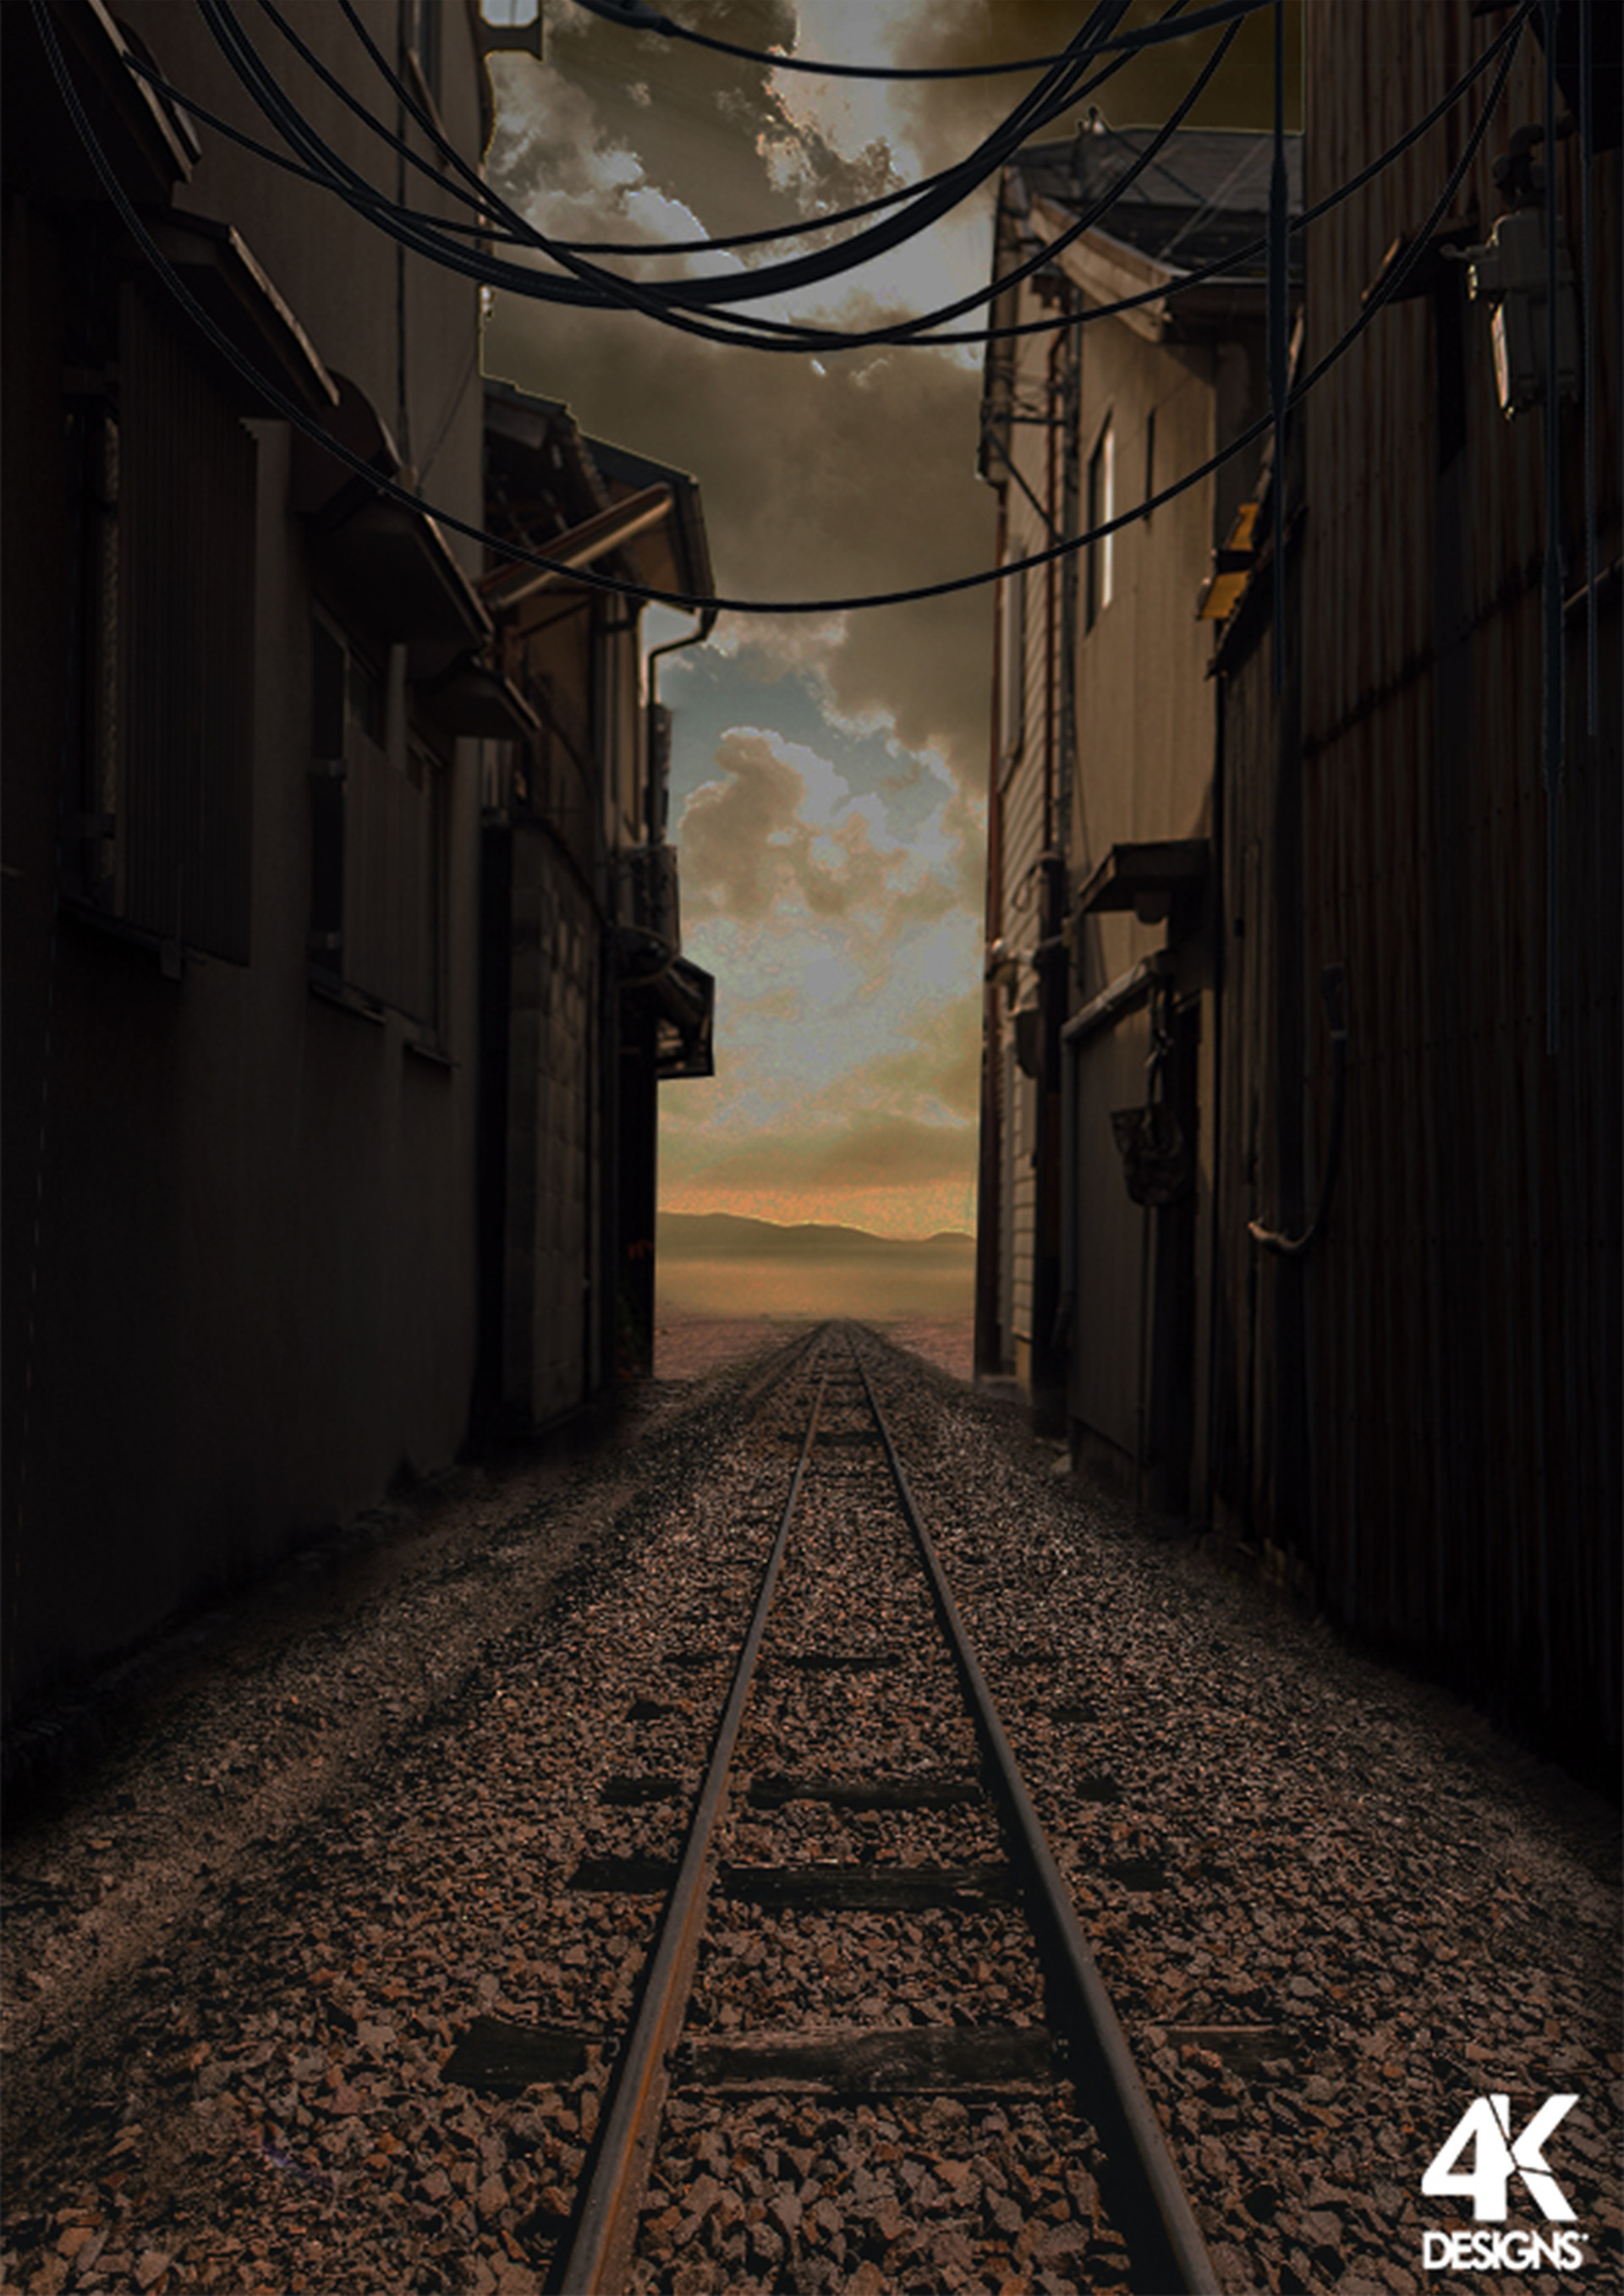 Lukas groh alley